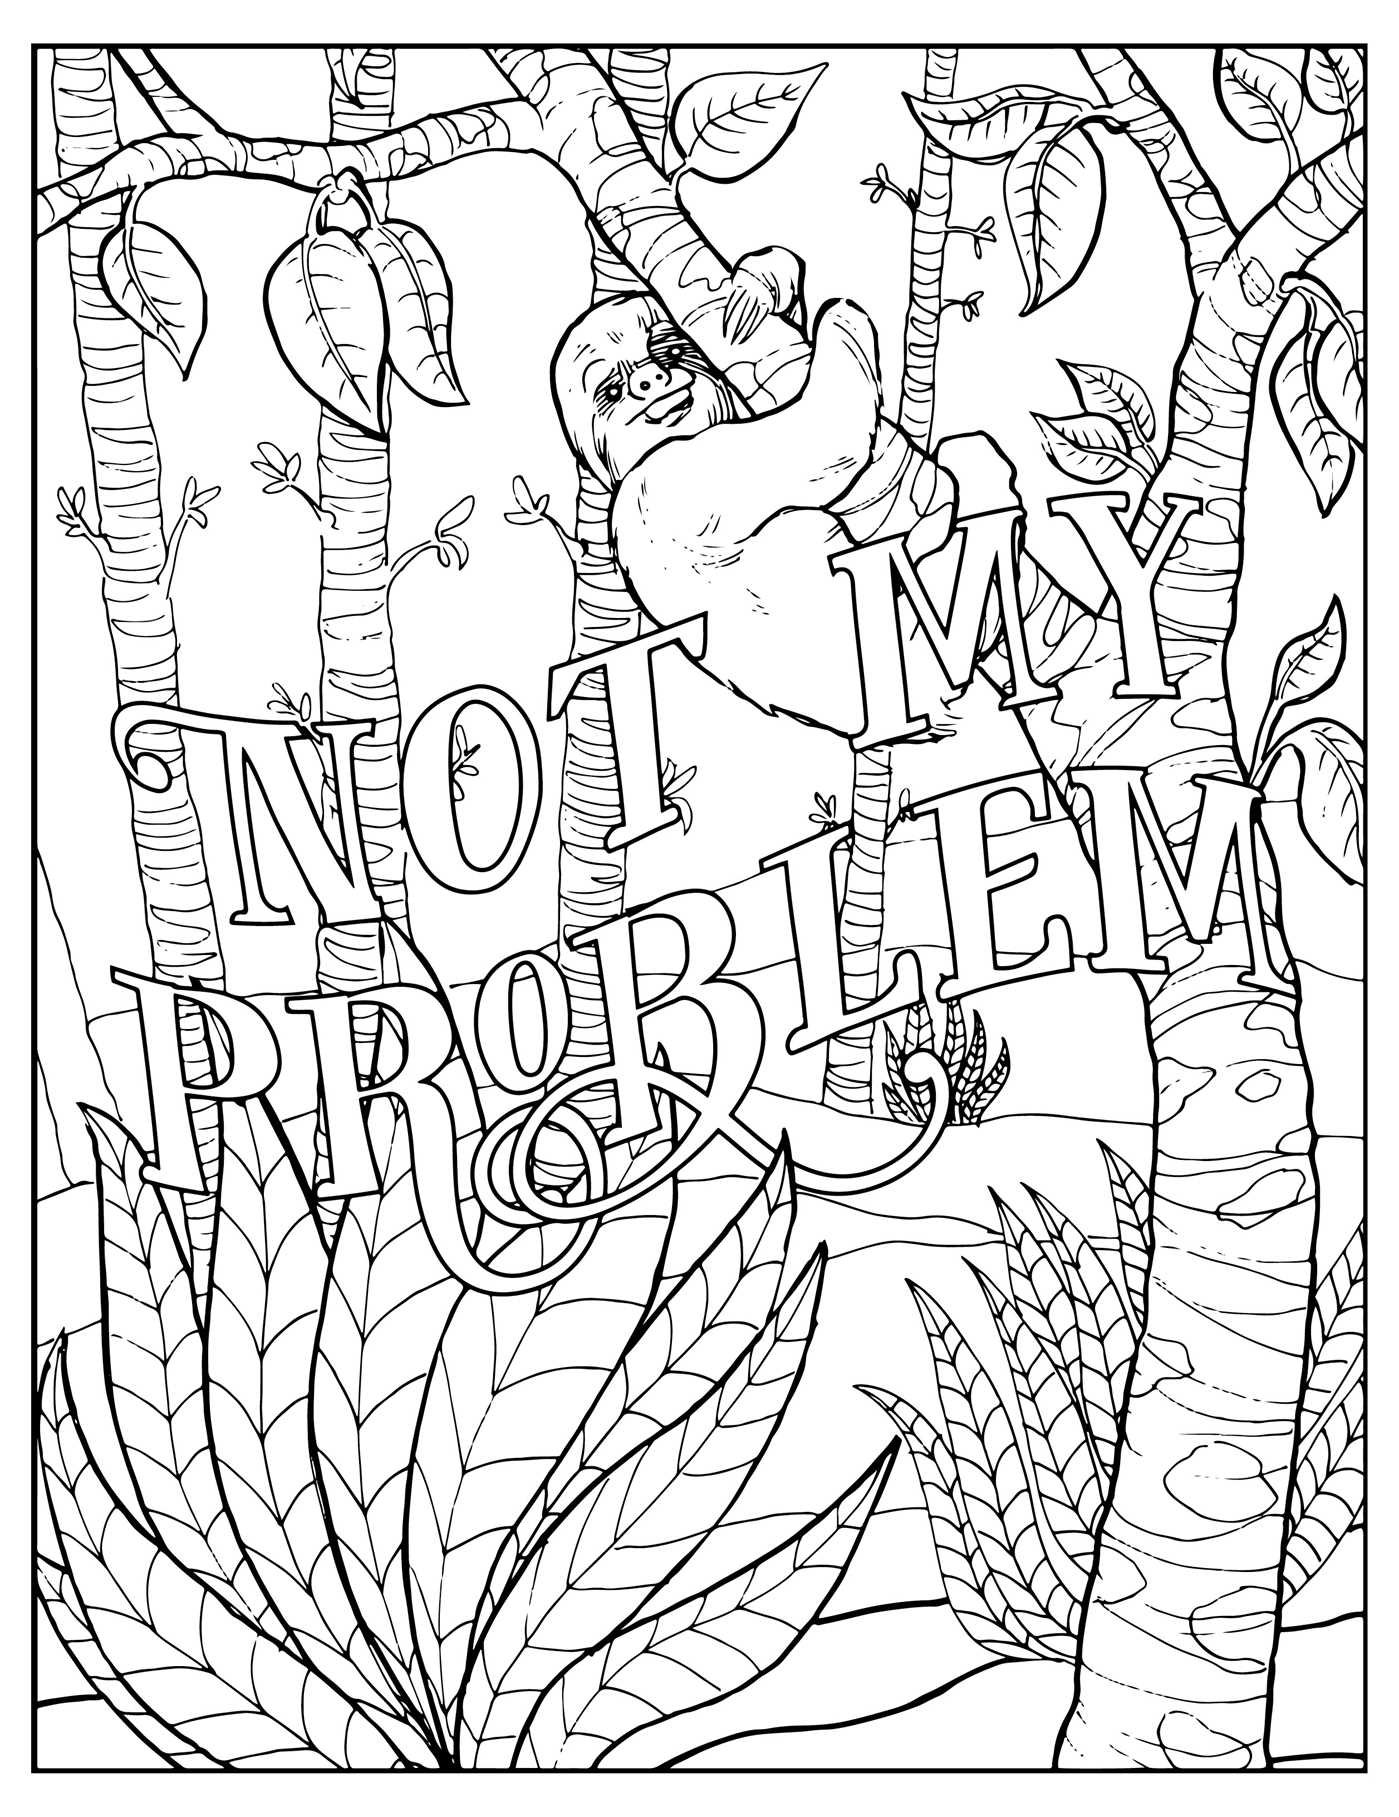 Bad word coloring pages - Fuck Off I M Coloring Unwind With 50 Obnoxiously Fun Swear Word Coloring Pages Dare You Stamp Company Dare You Stamp Co 9781604336610 Amazon Com